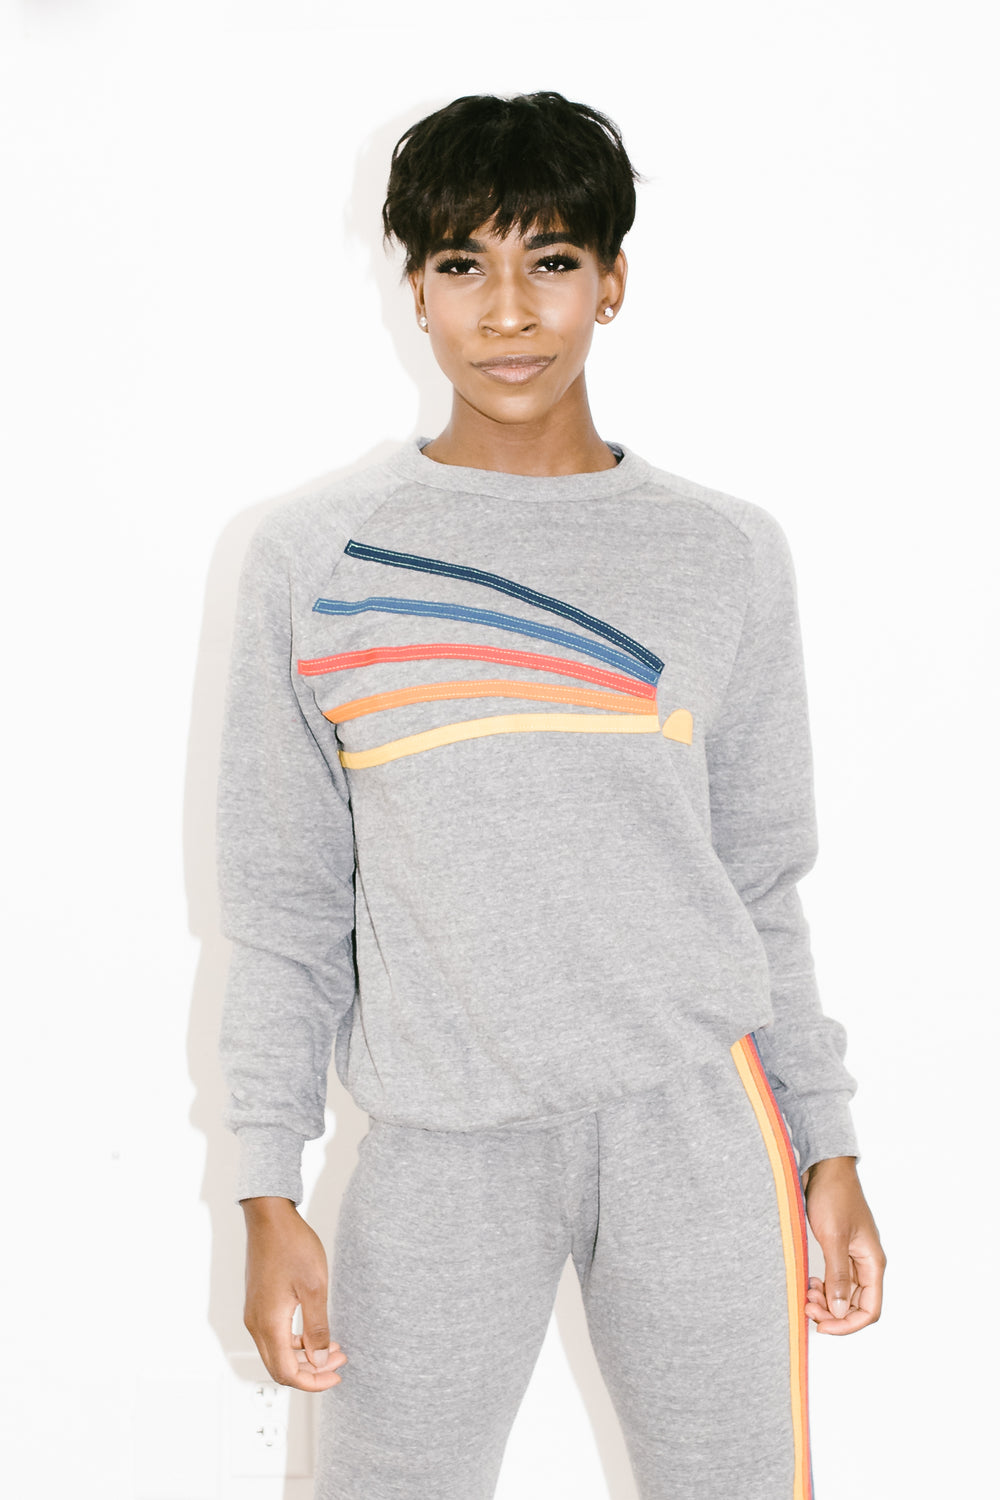 Daydream Crew Sweatshirt in Heather Grey